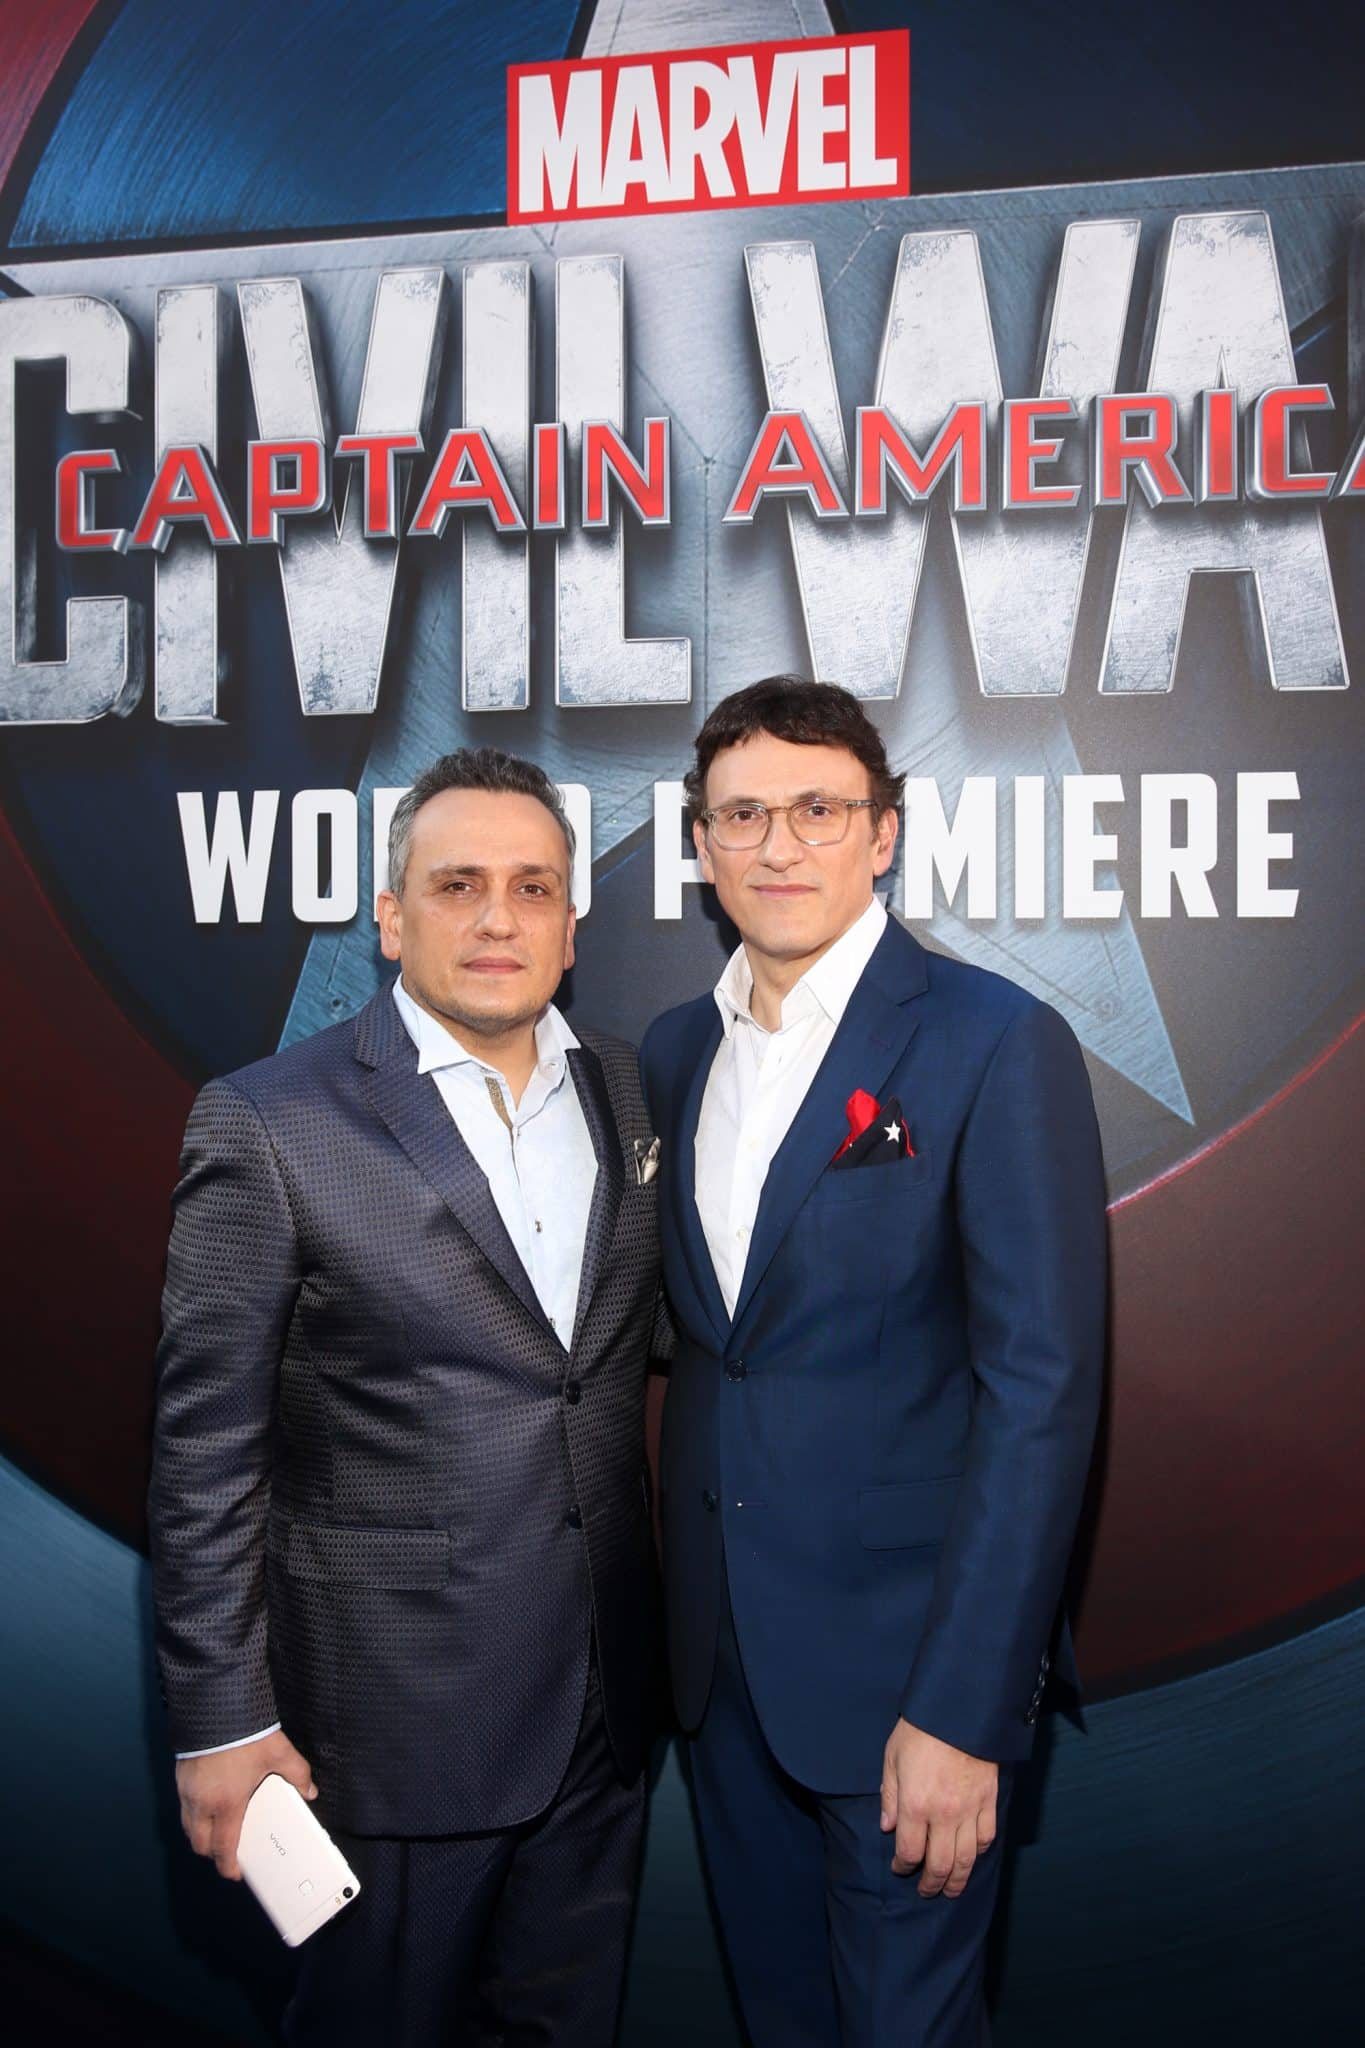 """HOLLYWOOD, CALIFORNIA - APRIL 12: Directors Joe Russo (L) and Anthony Russo attend The World Premiere of Marvel's """"Captain America: Civil War"""" at Dolby Theatre on April 12, 2016 in Los Angeles, California. (Photo by Jesse Grant/Getty Images for Disney) *** Local Caption *** Joe Russo; Anthony Russo"""